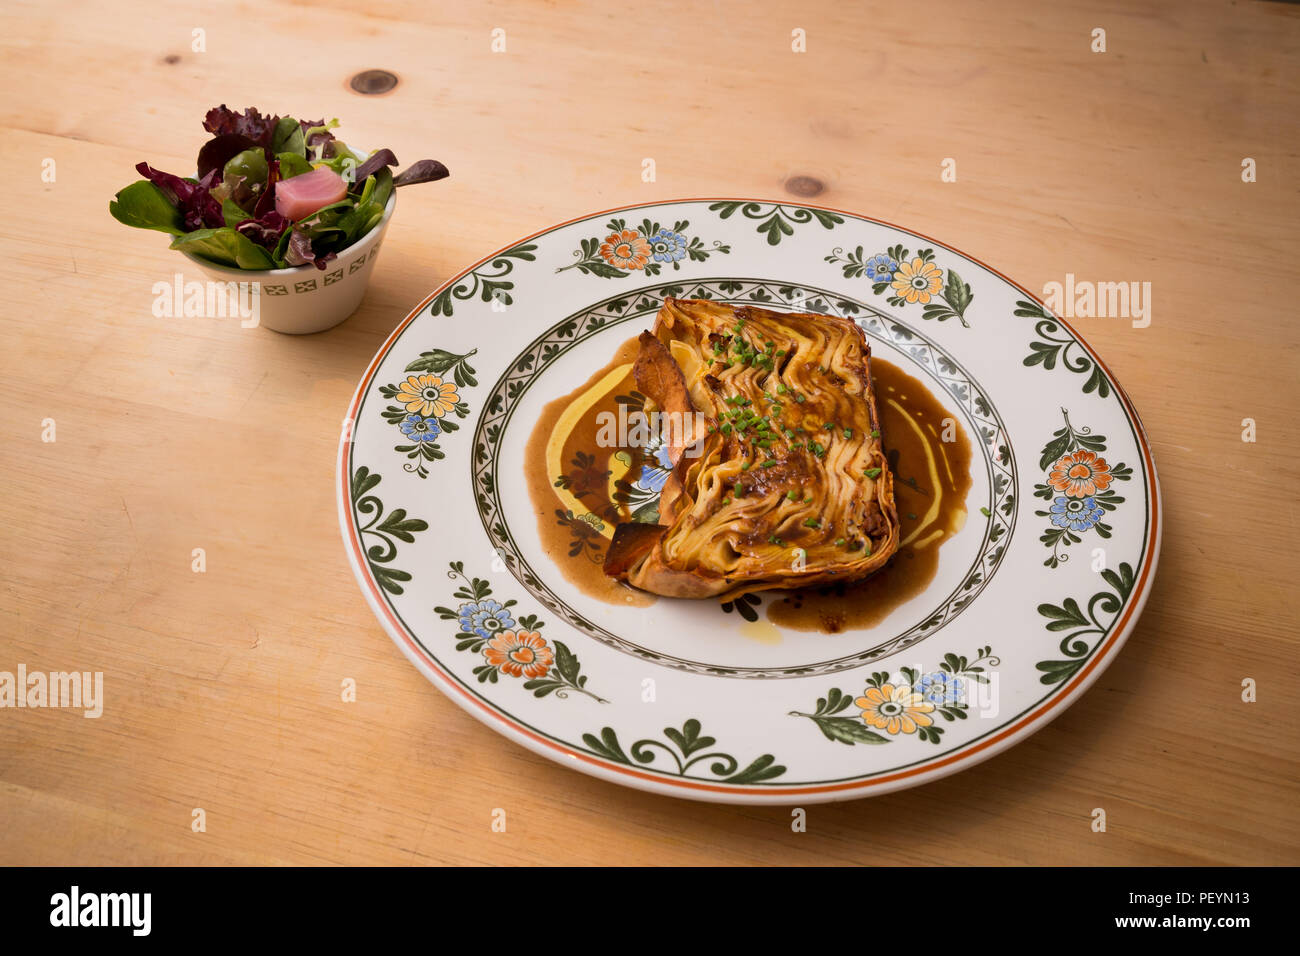 A plate of timballo pasta with a side salad. - Stock Image